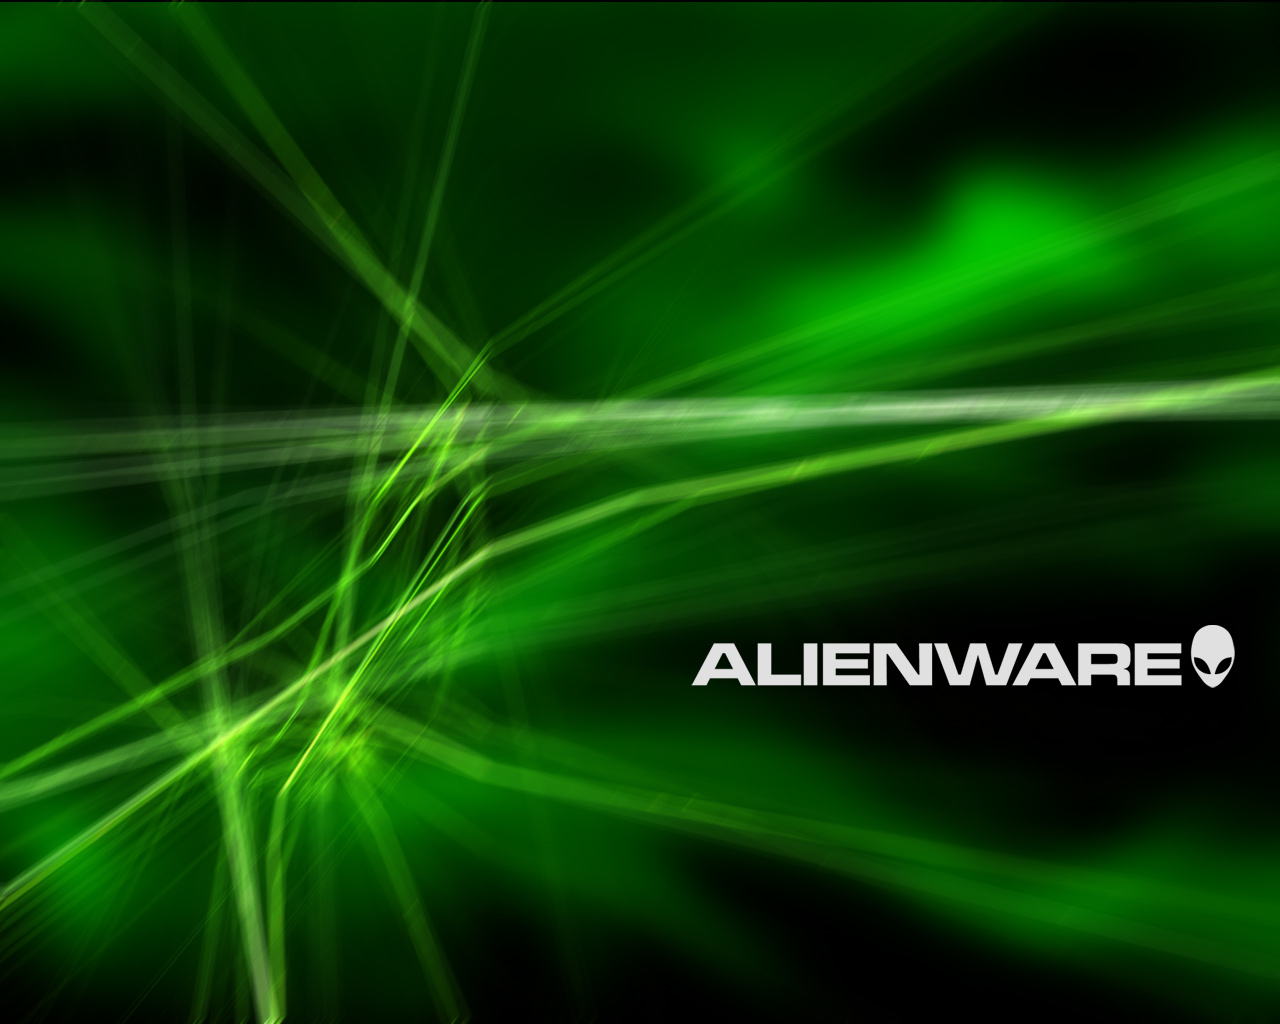 Green Alienware Wallpapers   4911 1280x1024